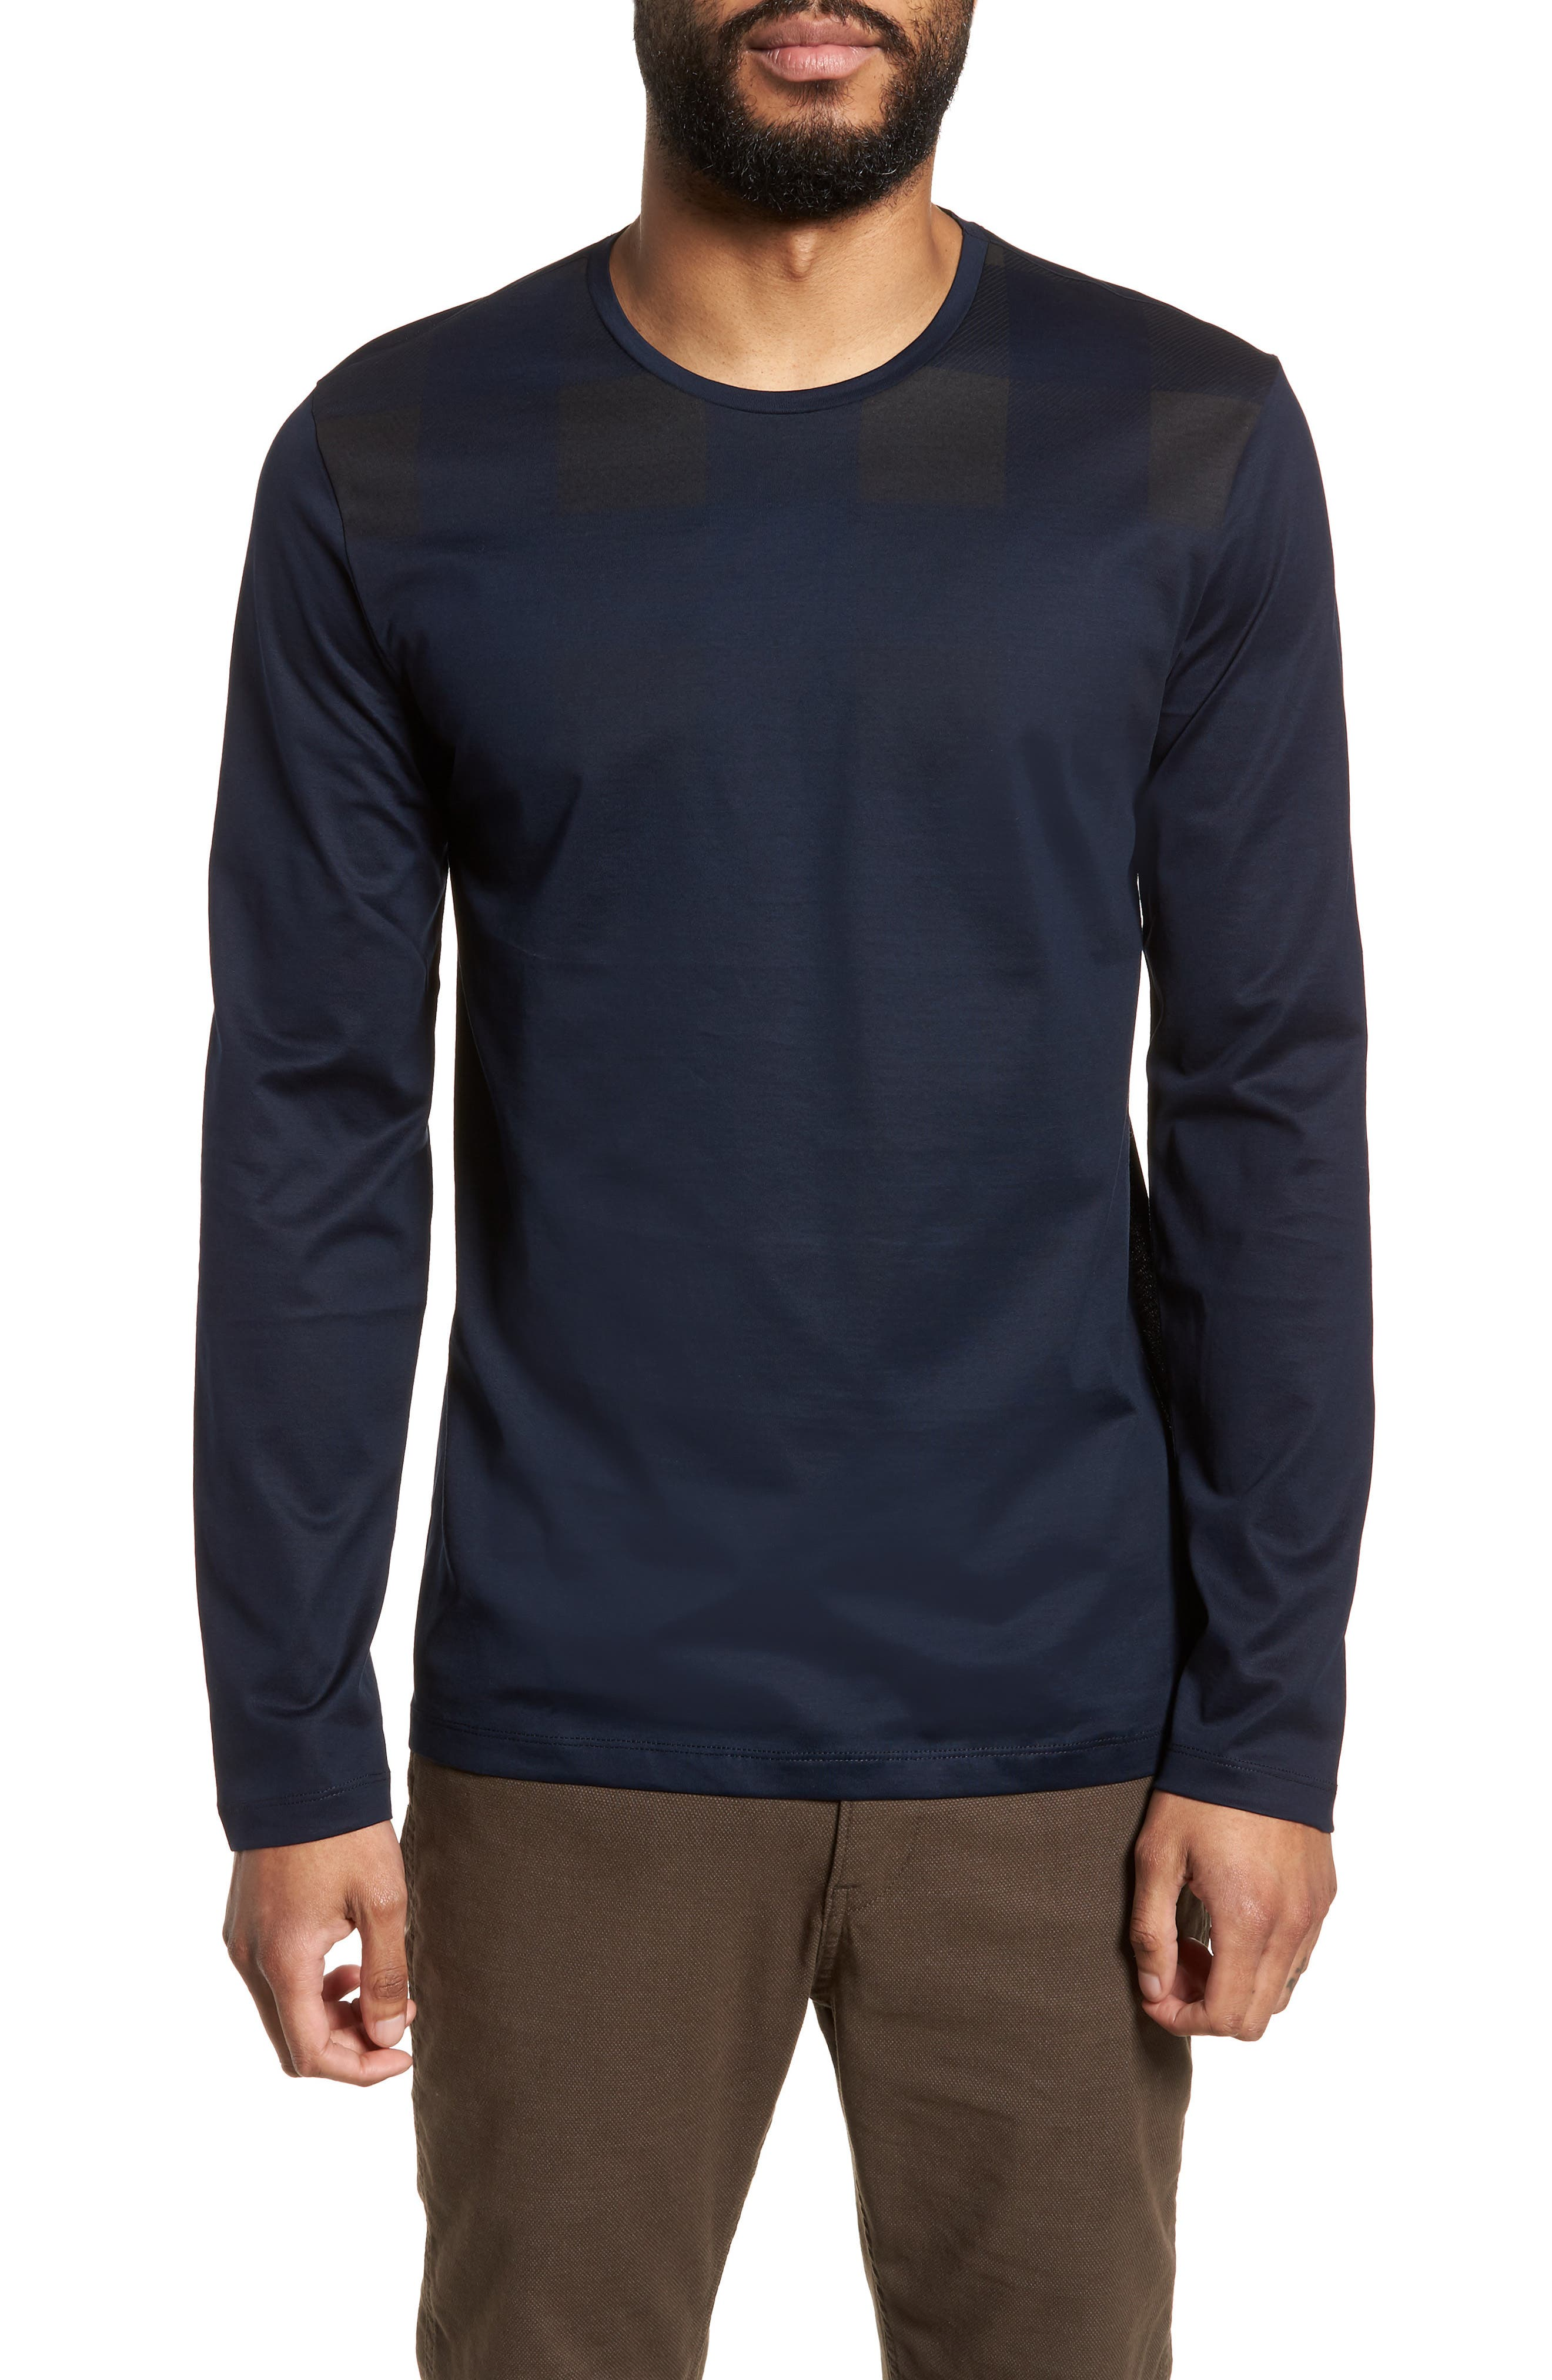 Main Image - BOSS Tenison Slim Fit Ombre Check Long Sleeve T-shirt